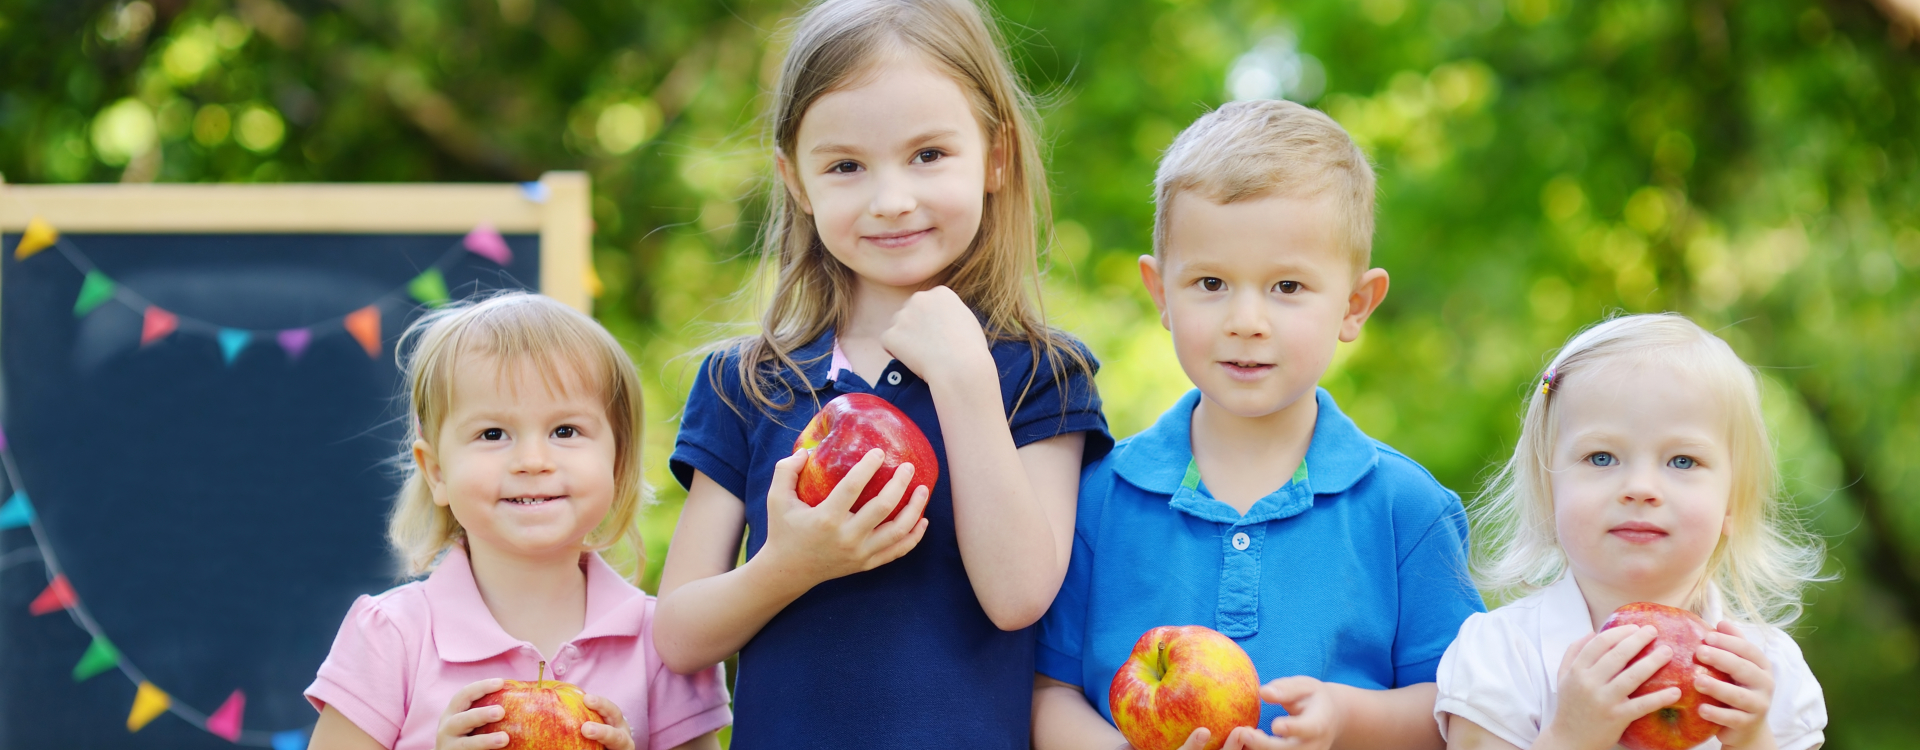 happy students holding a apple